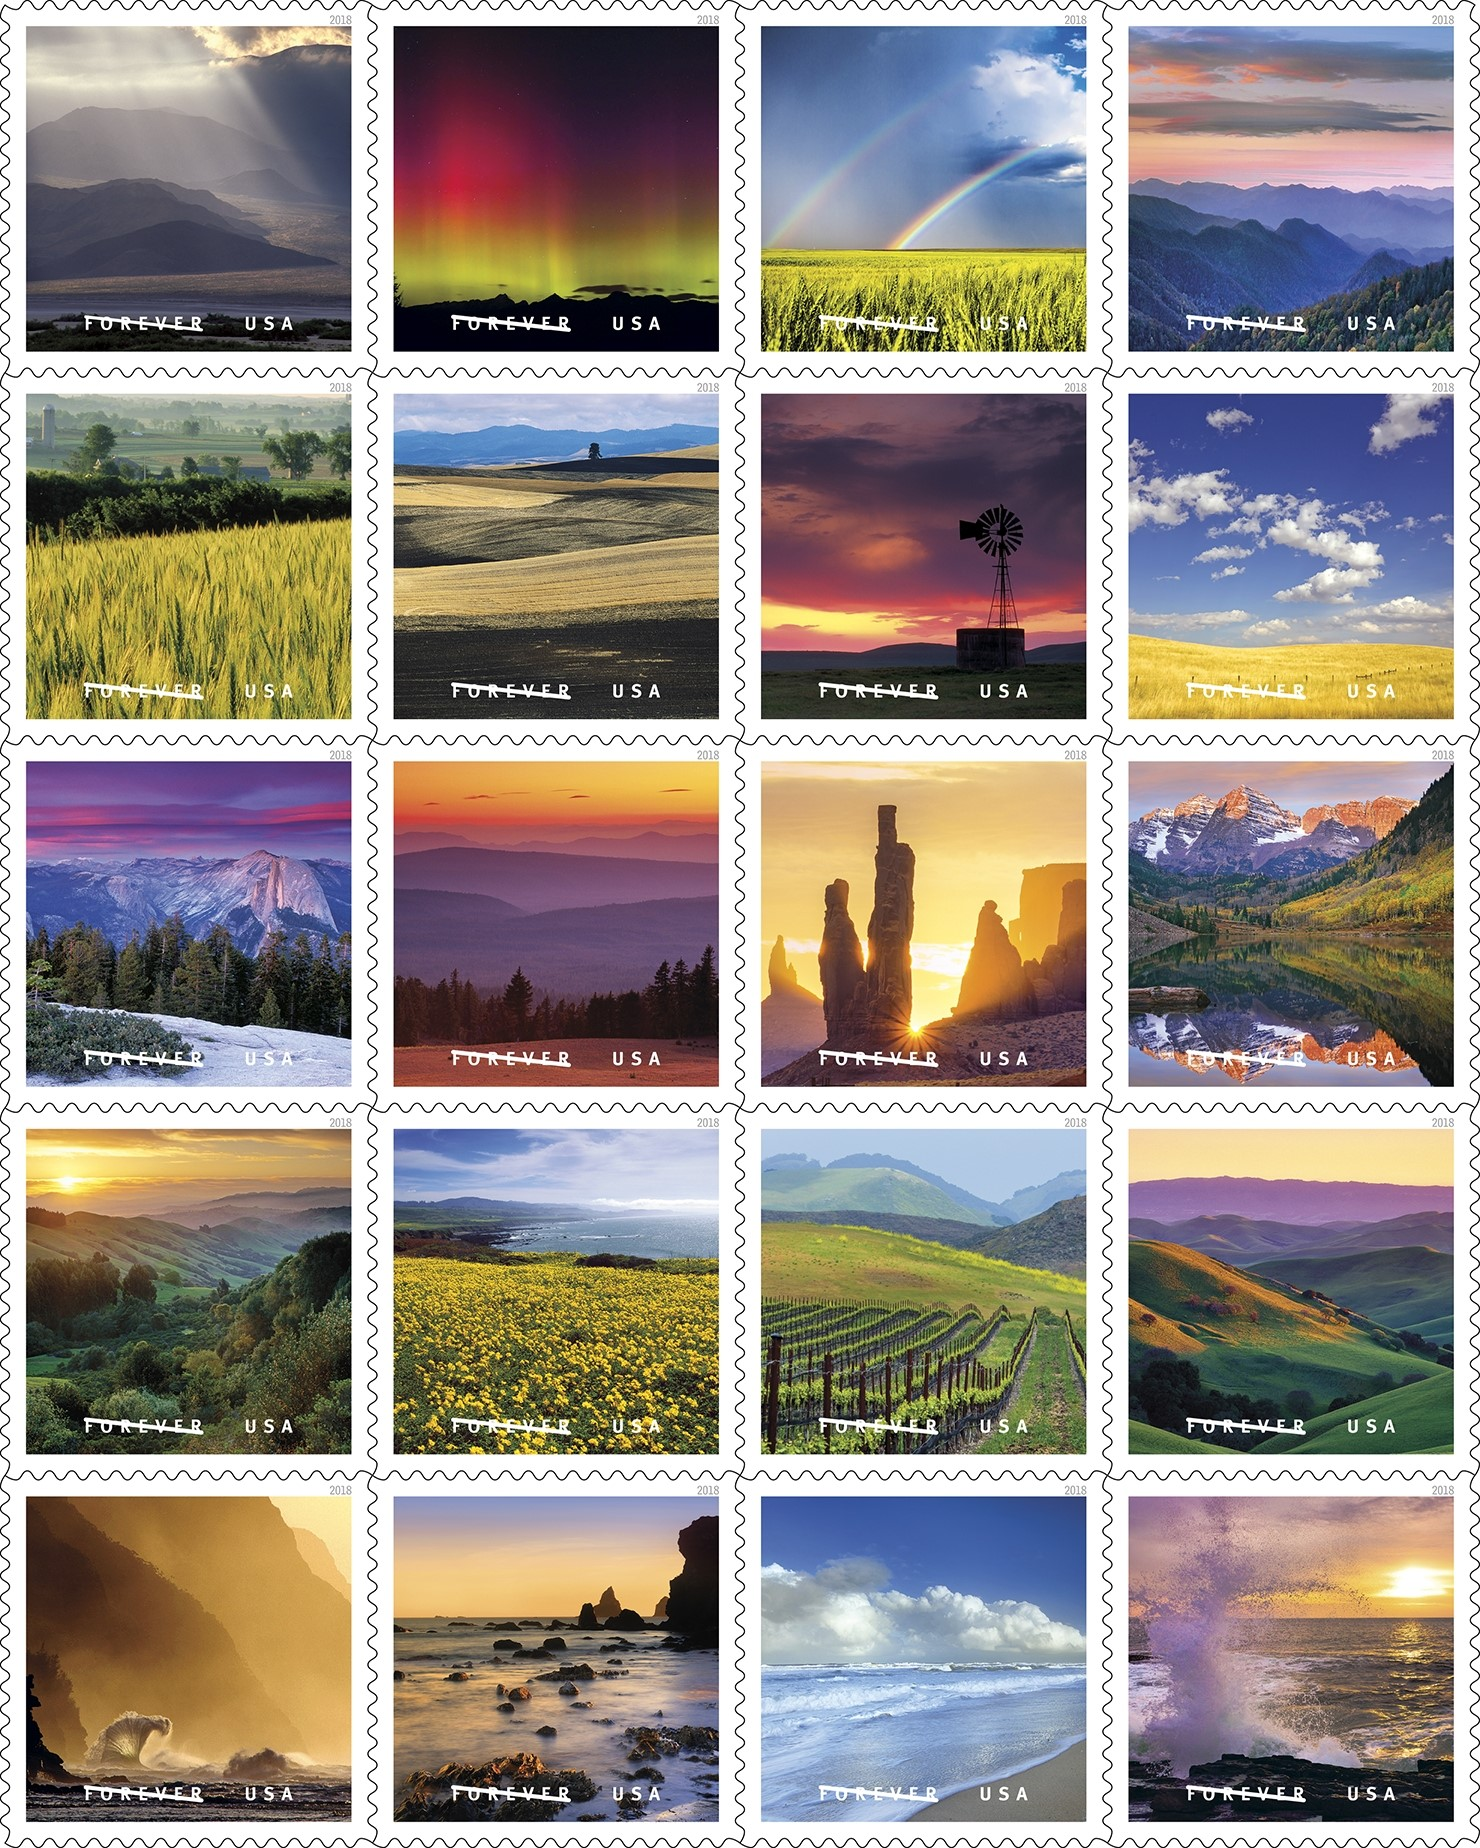 USPS New Stamp Issues 2018 on StampNewsNow com